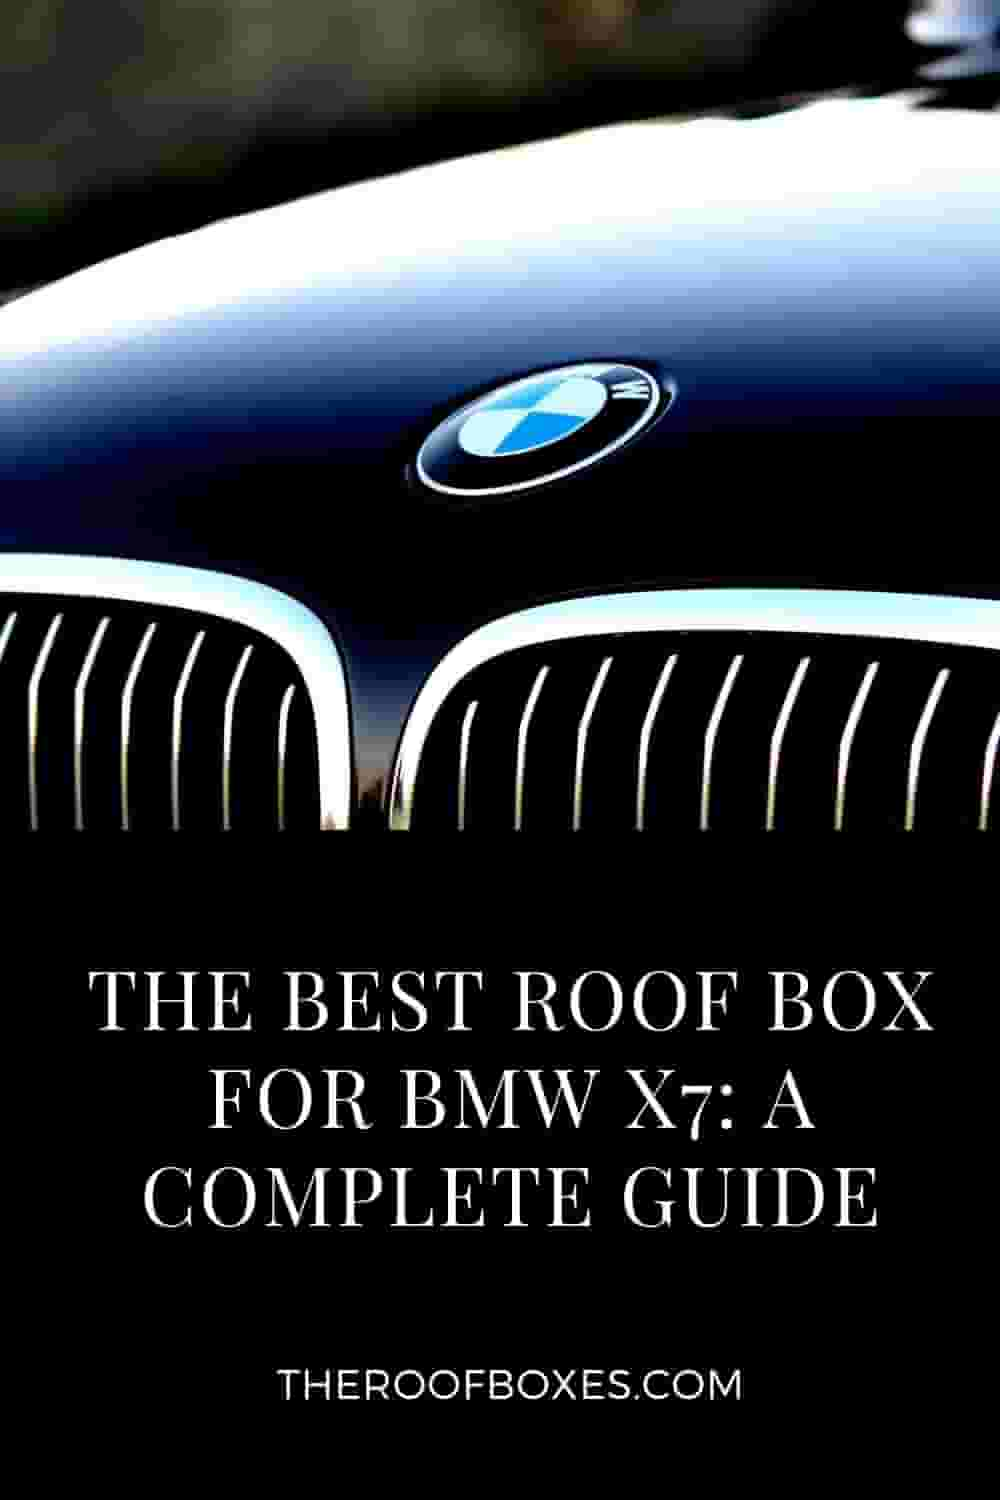 Roof Box for BMW X7 – Reviews and Comparison